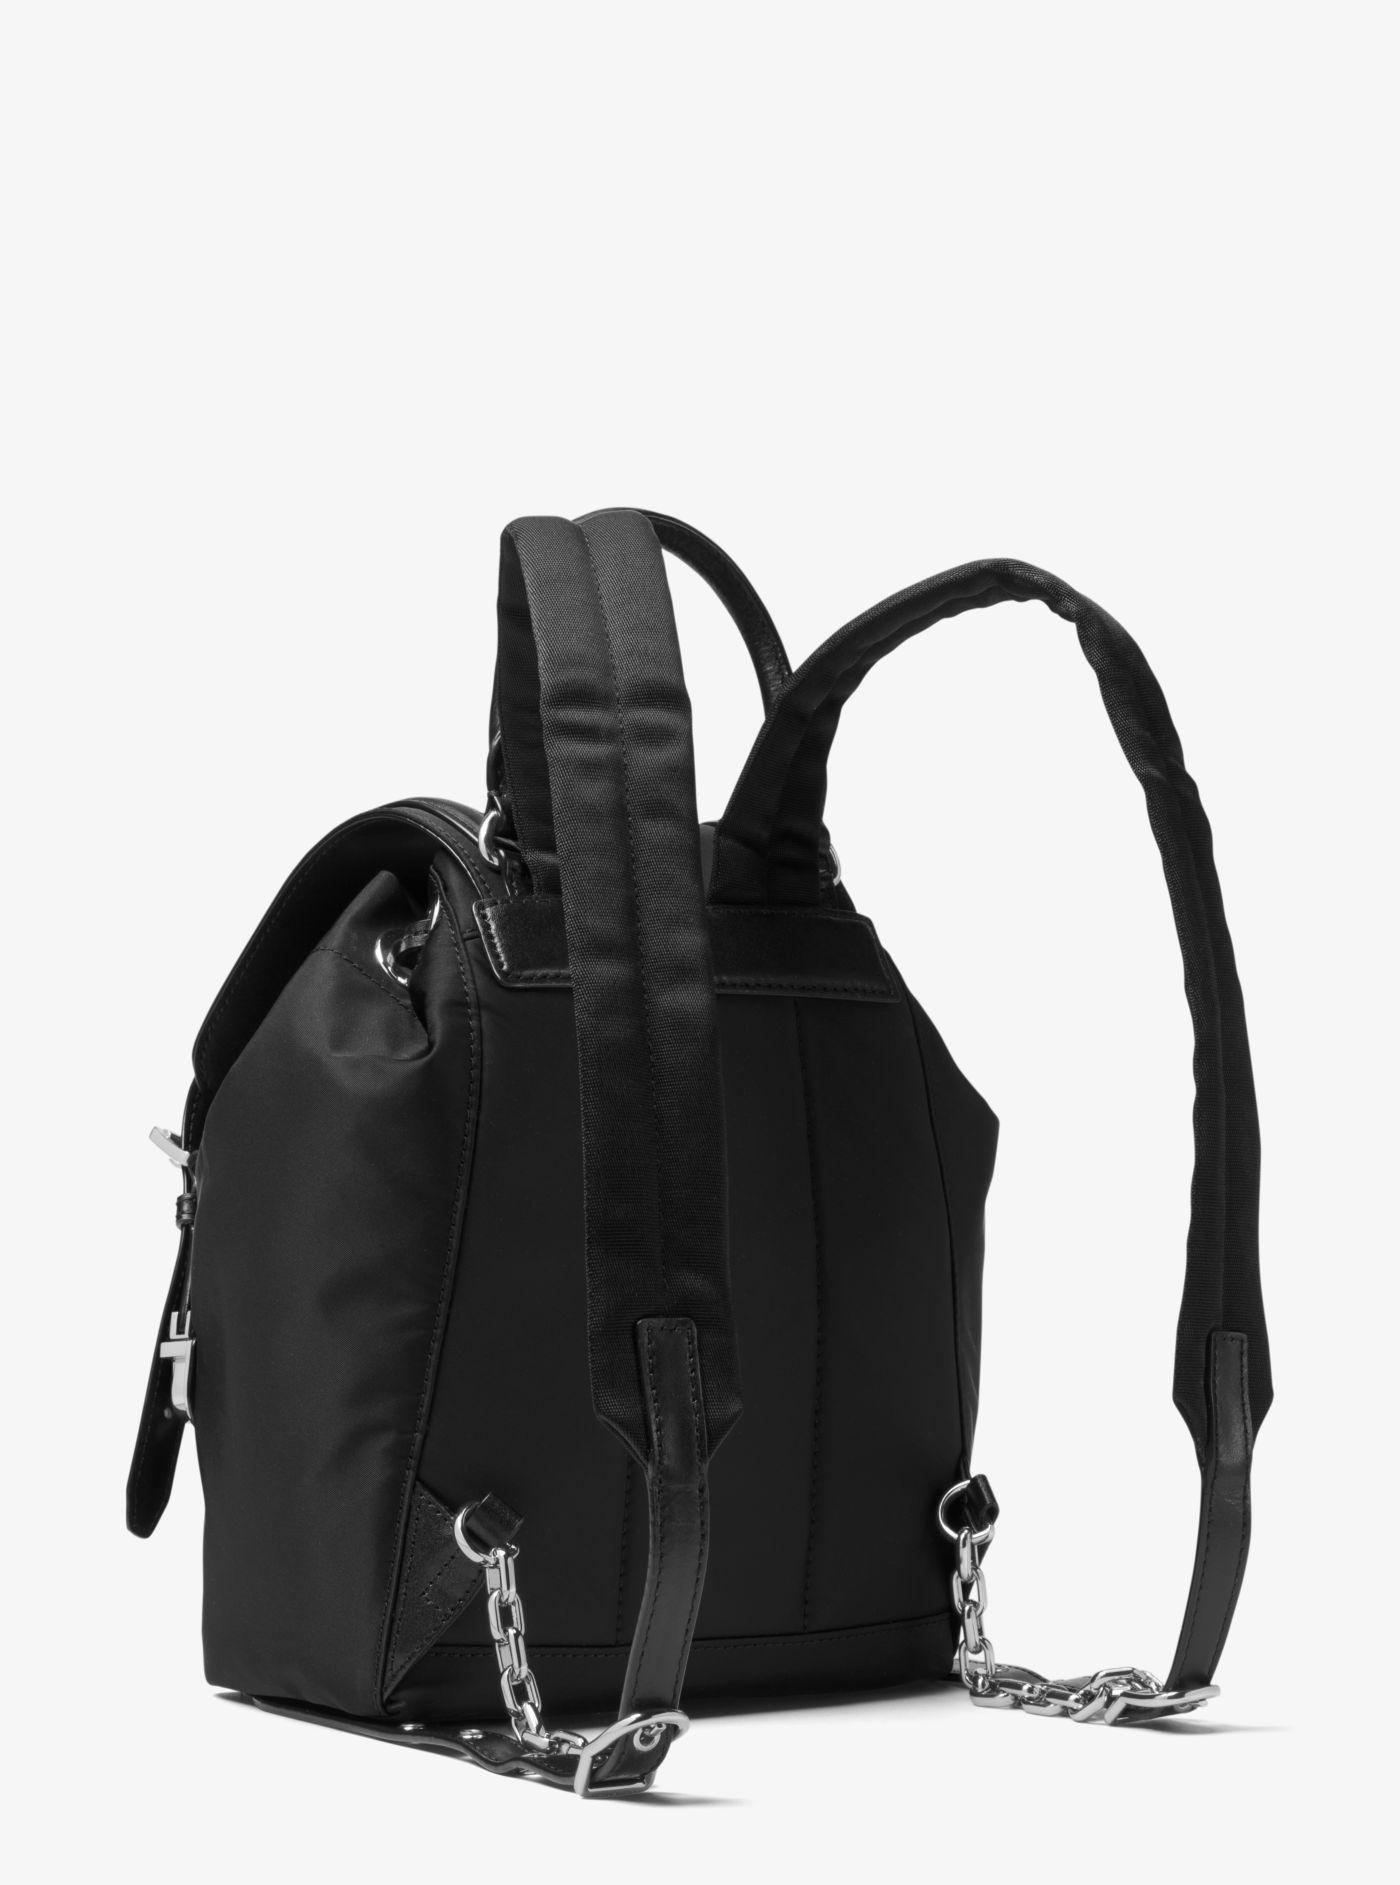 1832257336d0 Michael Kors - Black Beacon Small Nylon Backpack - Lyst. View fullscreen